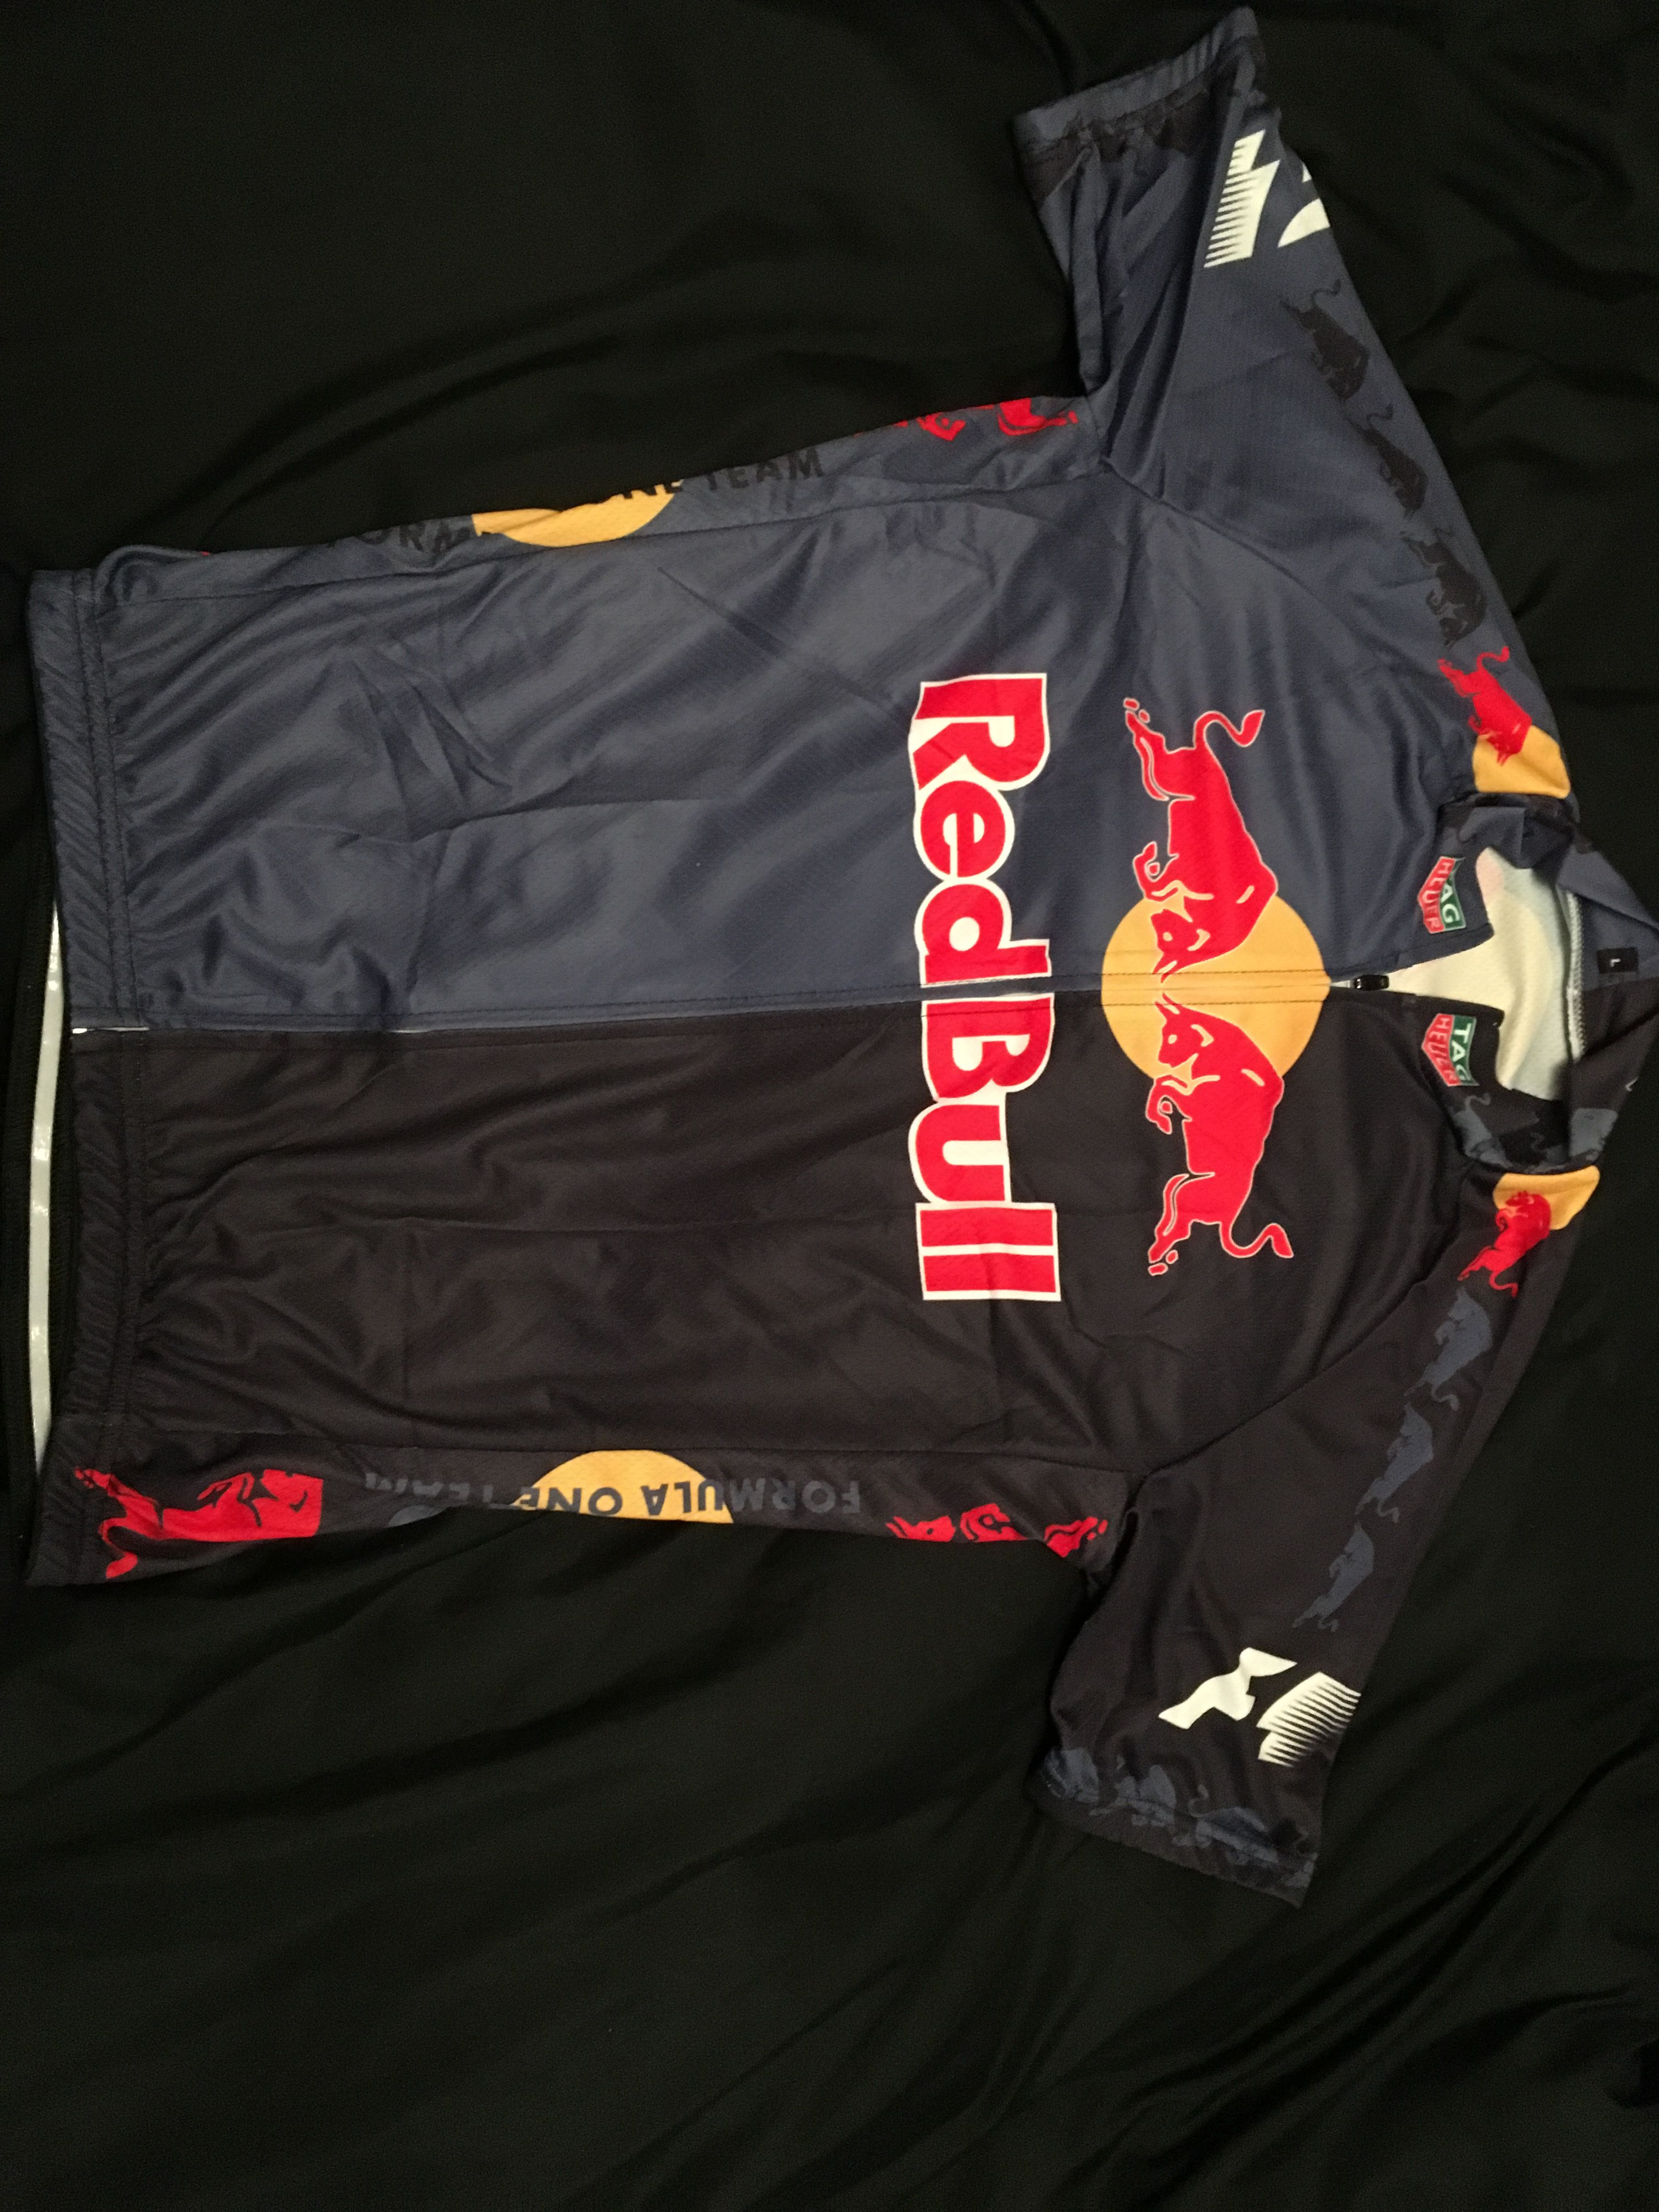 3a4fc8387 Custom Cycling Jersey   Front   Red Bull   Max Verstappen